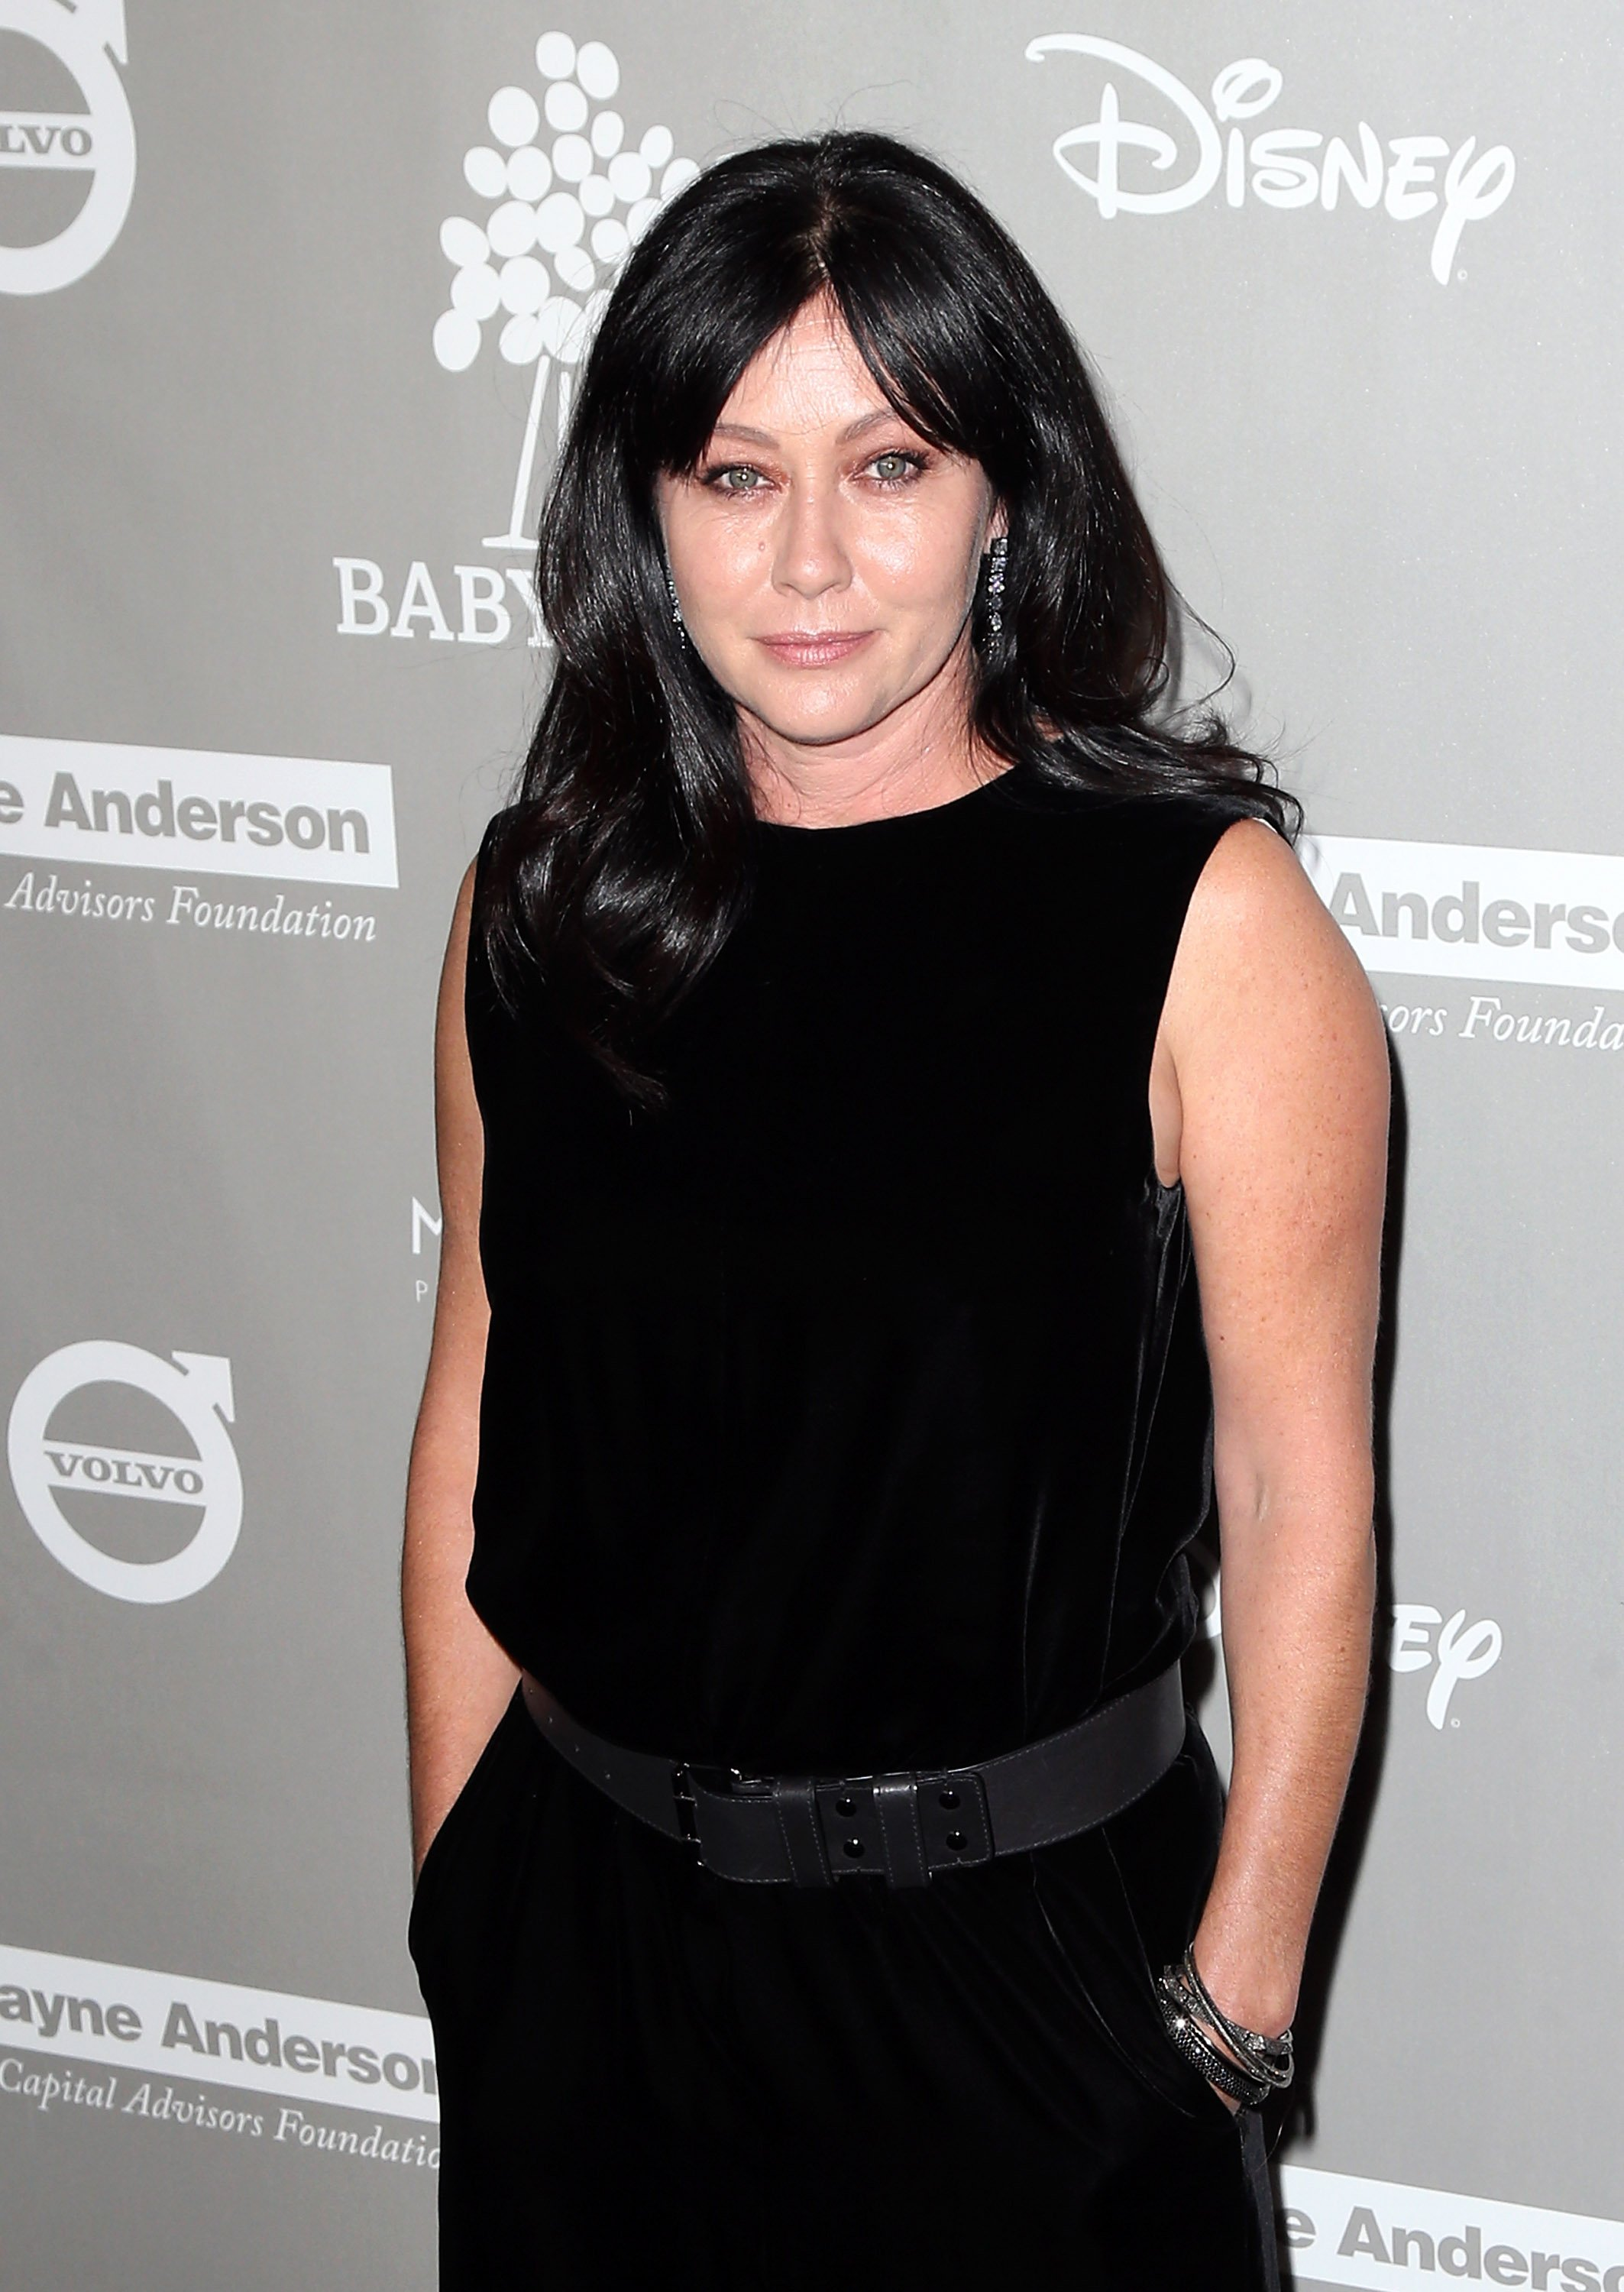 Shannen Doherty at the Baby2Baby Gala presented by MarulaOil & Kayne Capital Advisors Foundation honoring Kerry Washington at 3LABS on November 14, 2015 in Culver City, California | Photo: Getty Images